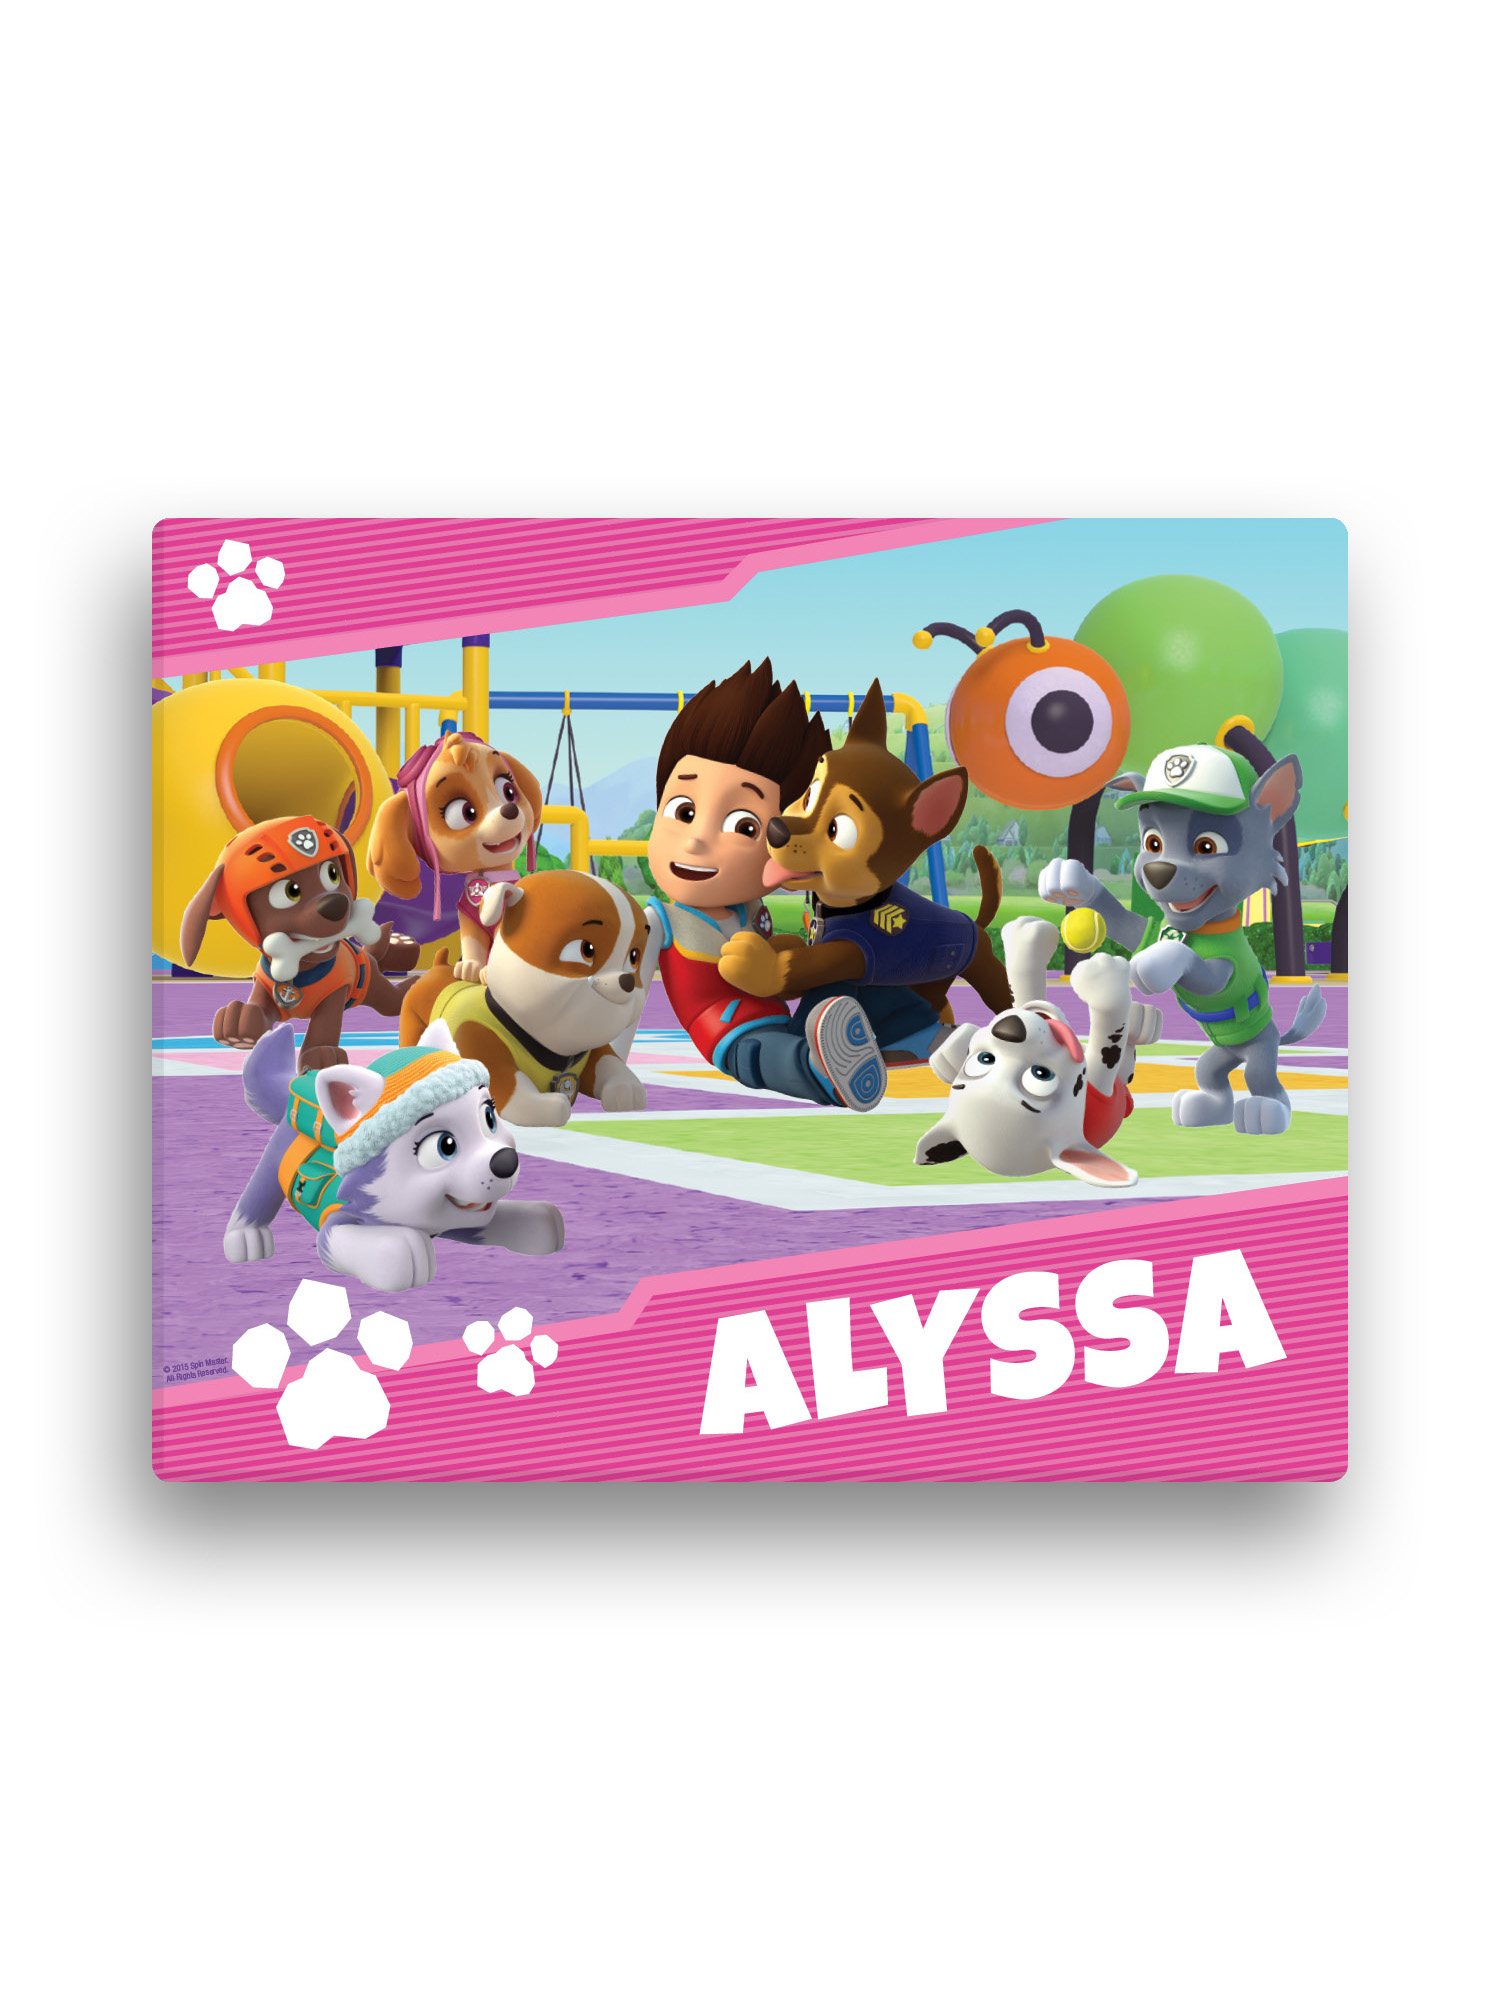 165 PAW PATROL NAME PERSONALIZED DOOR WALL ROOM POSTER CUSTOMIZED